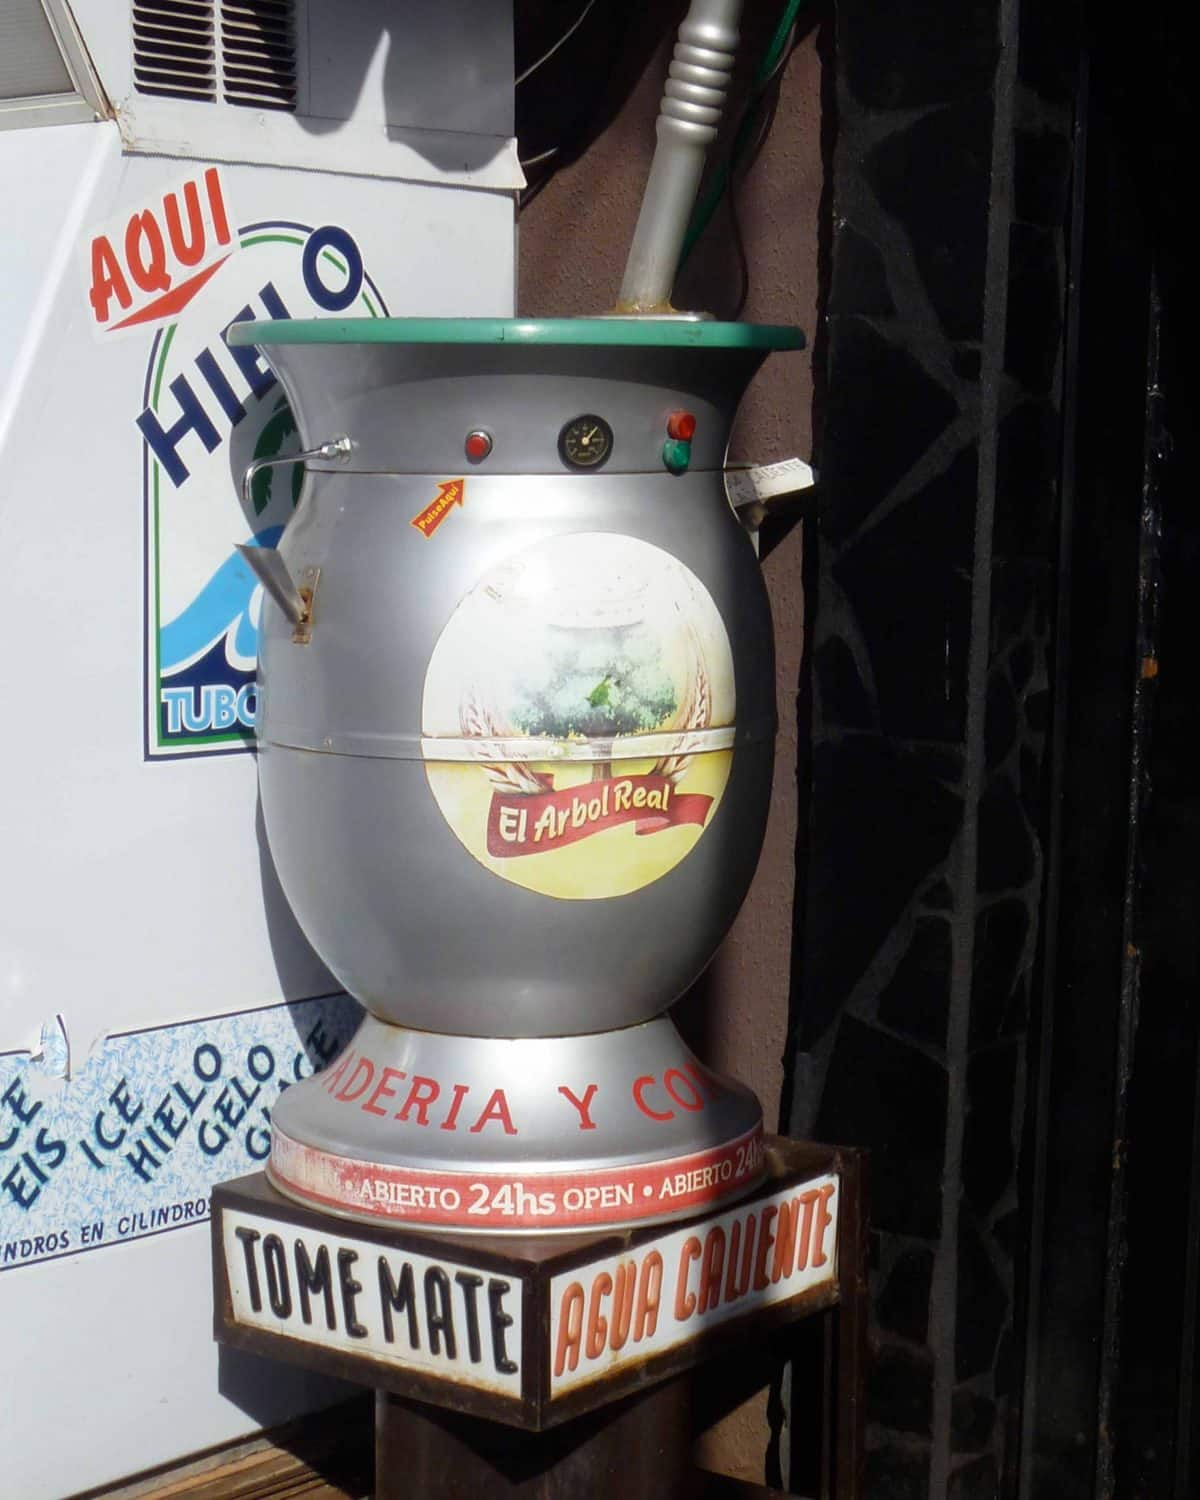 Hot water for purchase, Argentina.